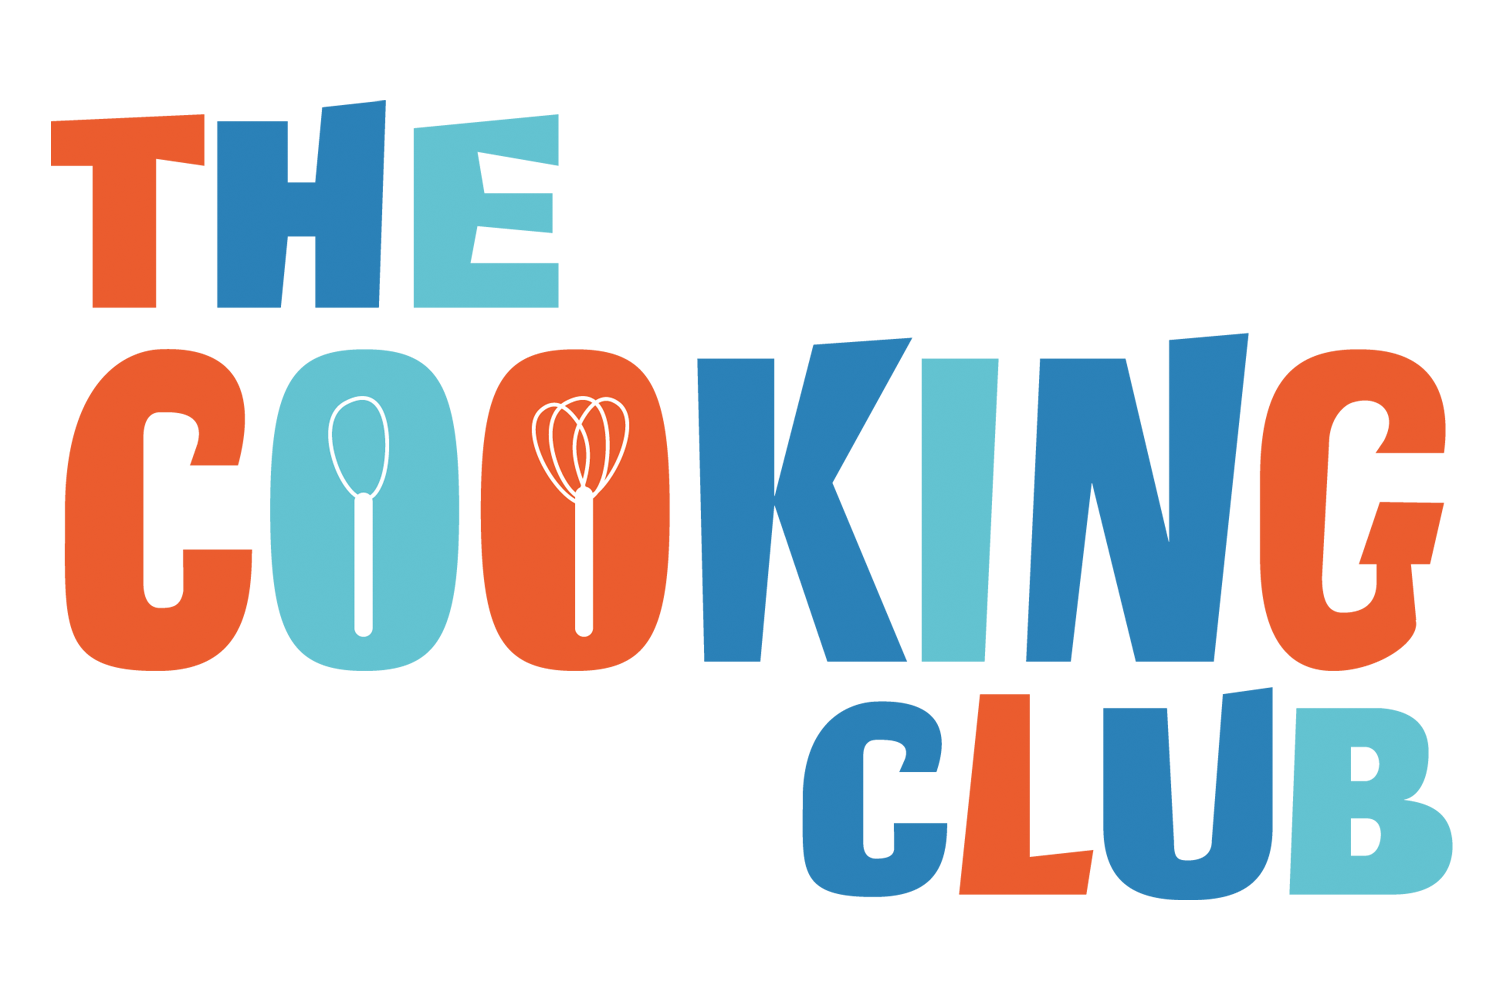 Cover image: The Cooking Club